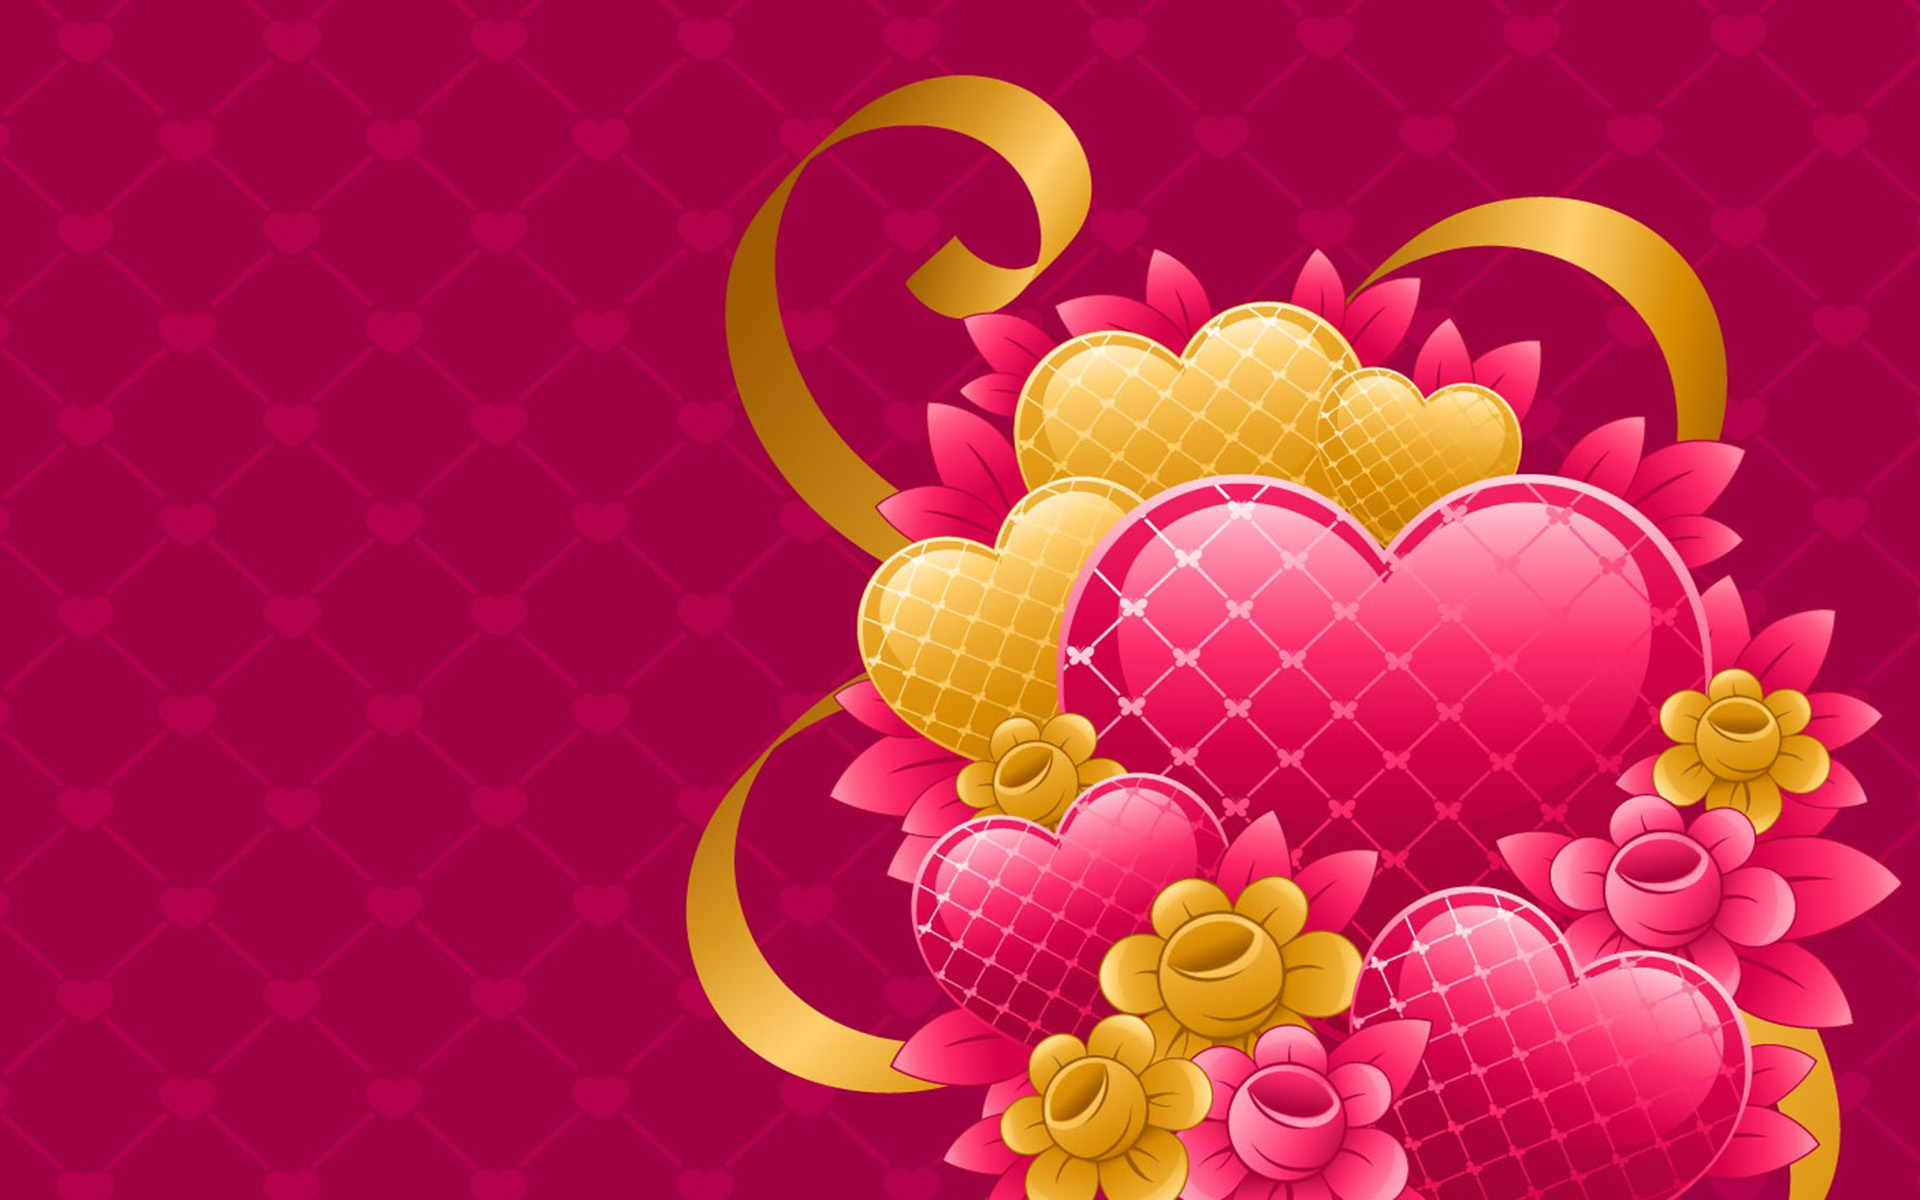 Love U Wallpaper Full Hd : Download Gambar Wallpaper Love - Gudang Wallpaper